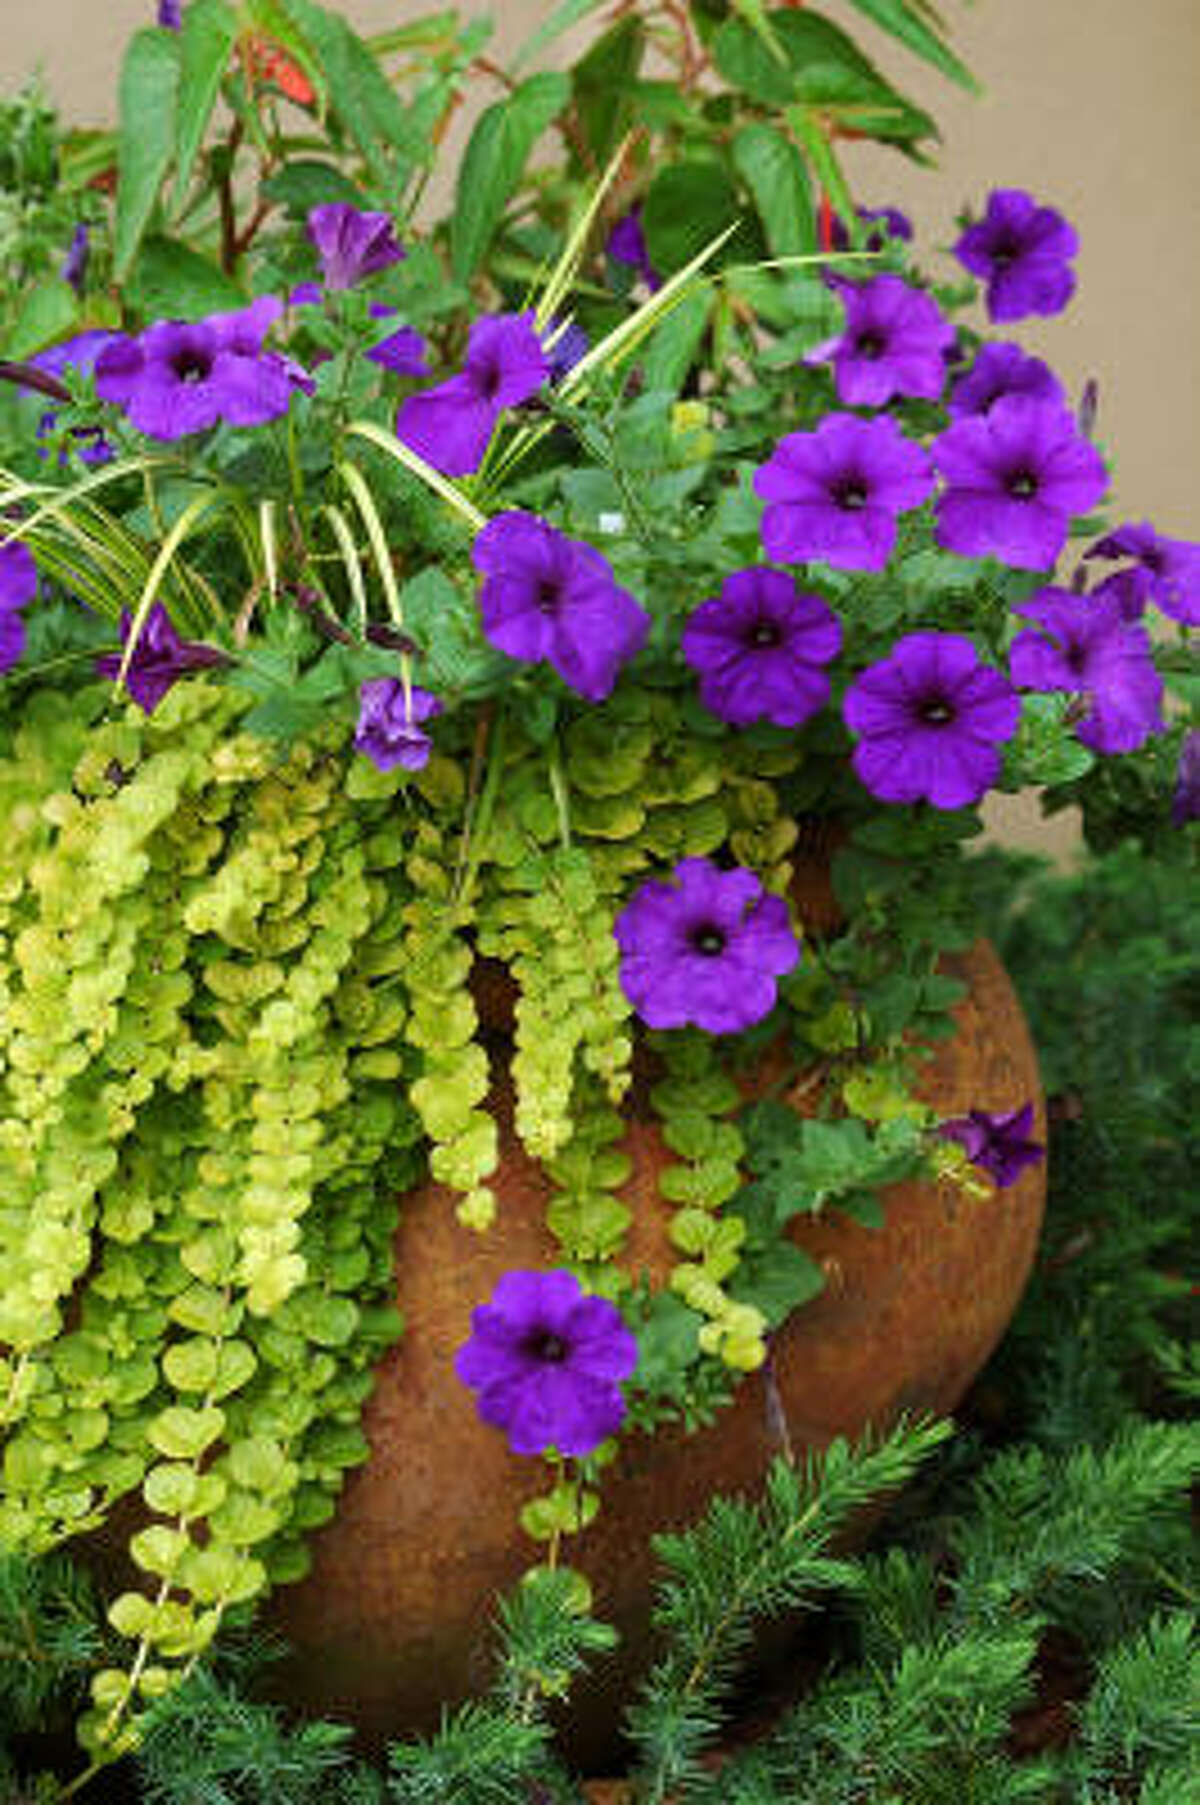 Goldilocks (Lysimachia nummularia) a bright, lime green spreading plant drapes in dramatic fashion over an Old World, European-style container with 'Matrix Blue' pansies and Easy Wave blue petunia.